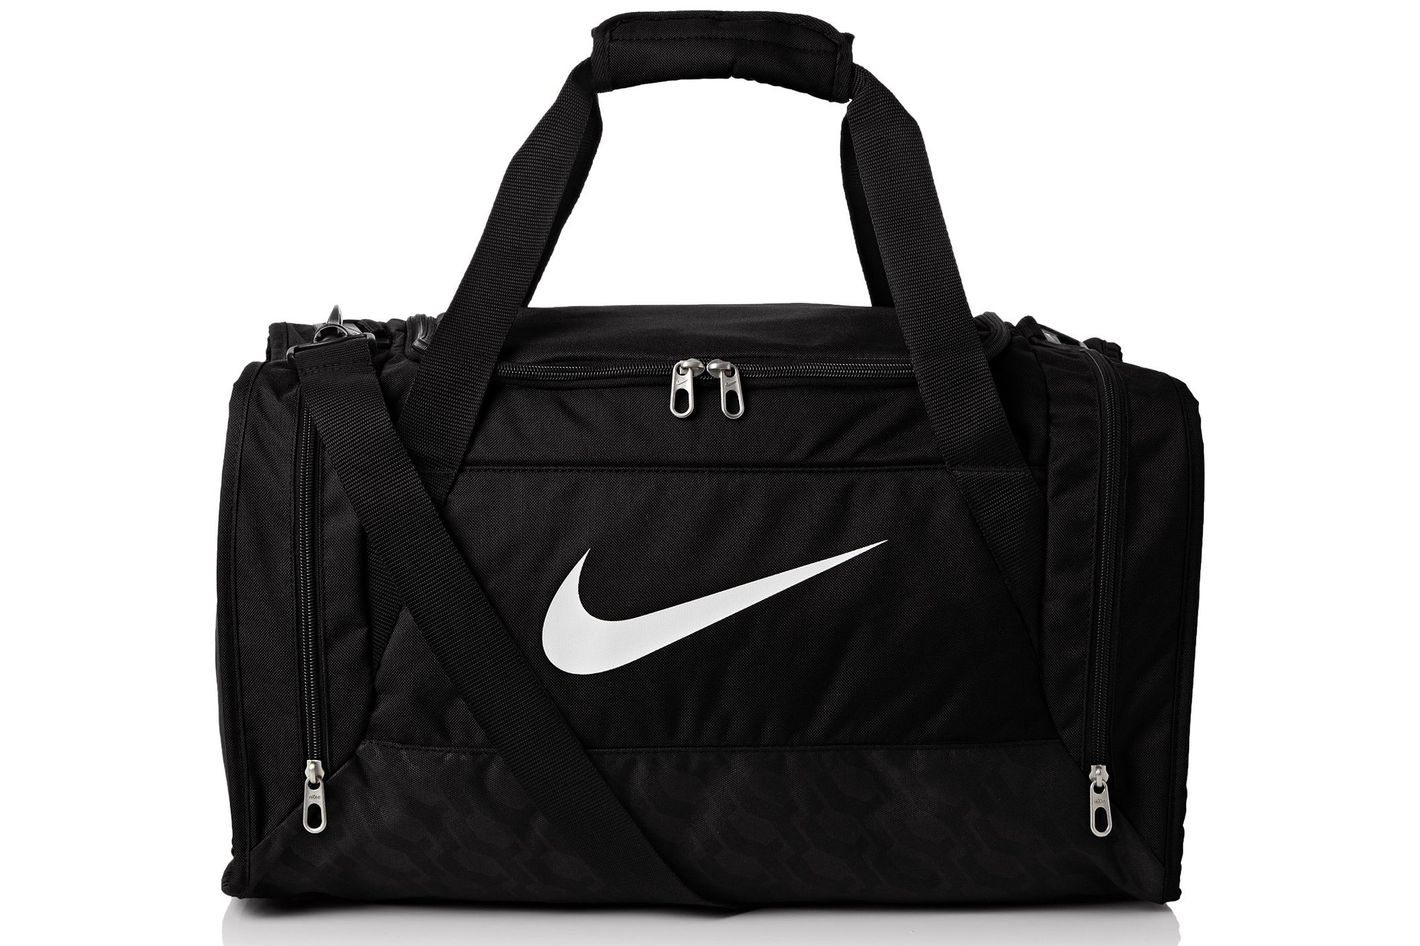 gym bag purse